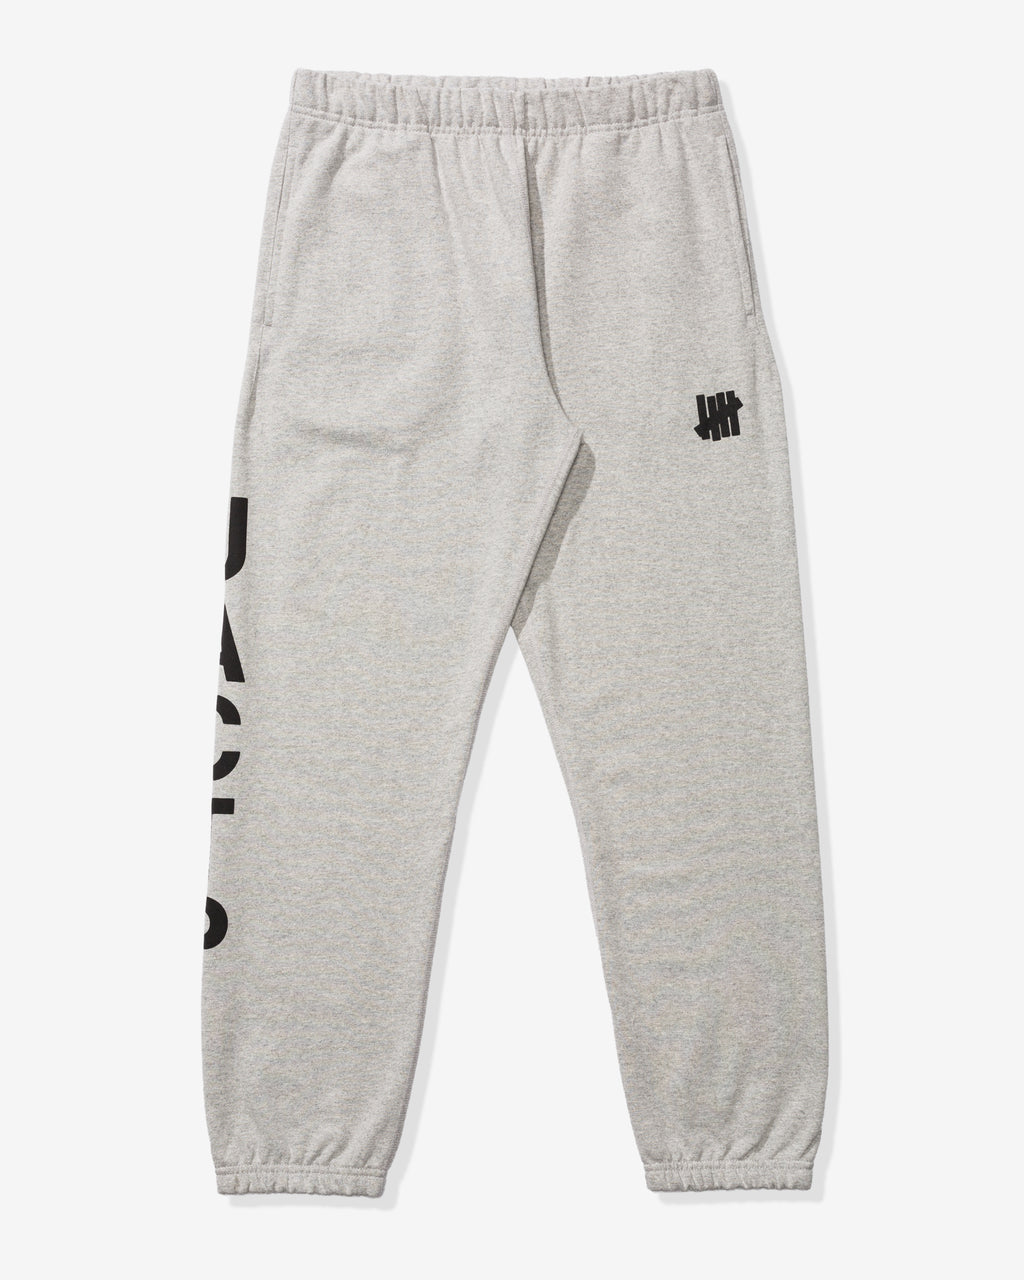 UACTP CORE SWEATPANT - HEATHERGREY